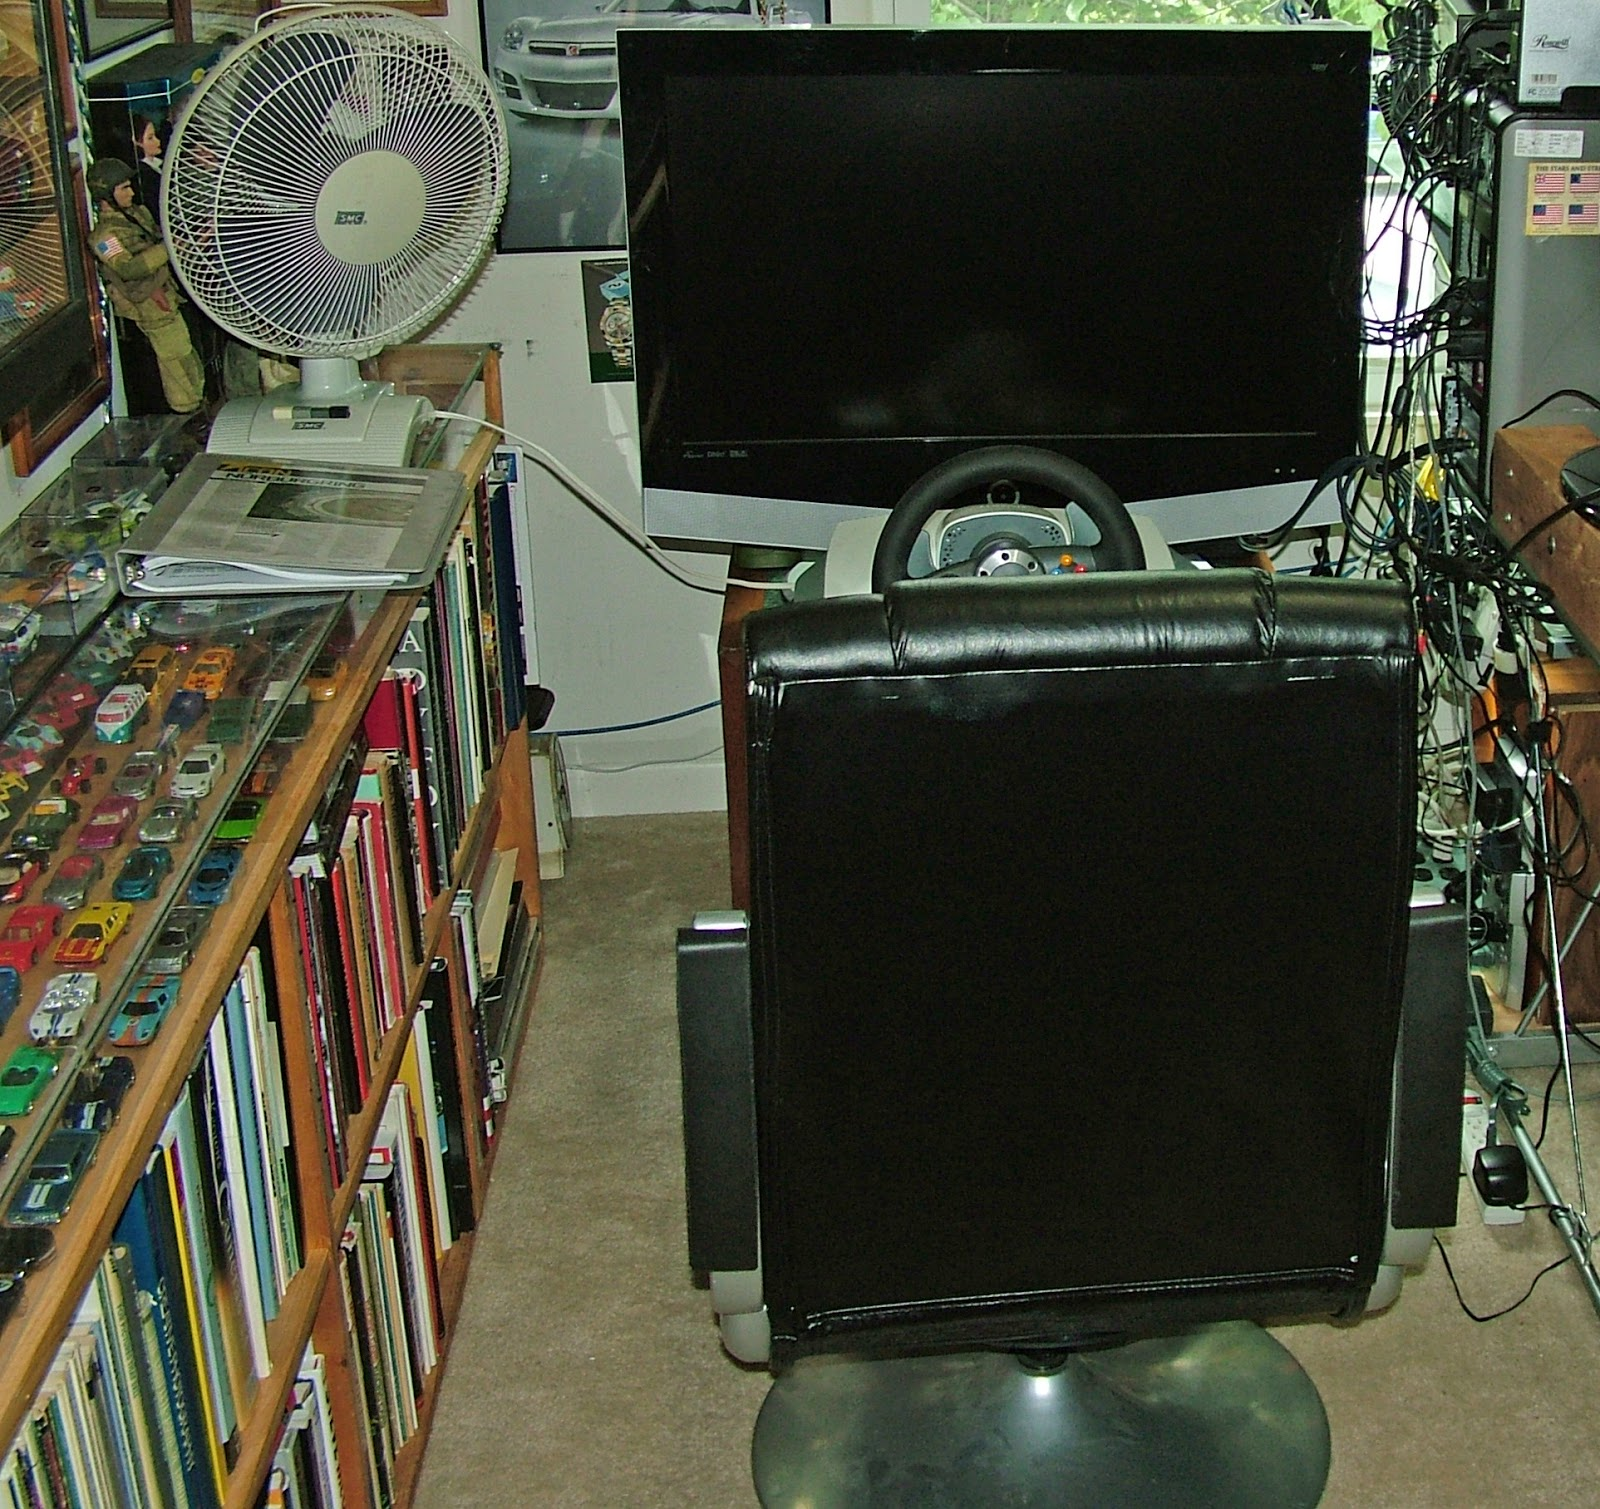 The Robb Collections Replacing Analog 2 1 Amplifier With Digital Tpa3116 Class D 2 1 Amplifier In A Gaming Chair And A Subwoofer